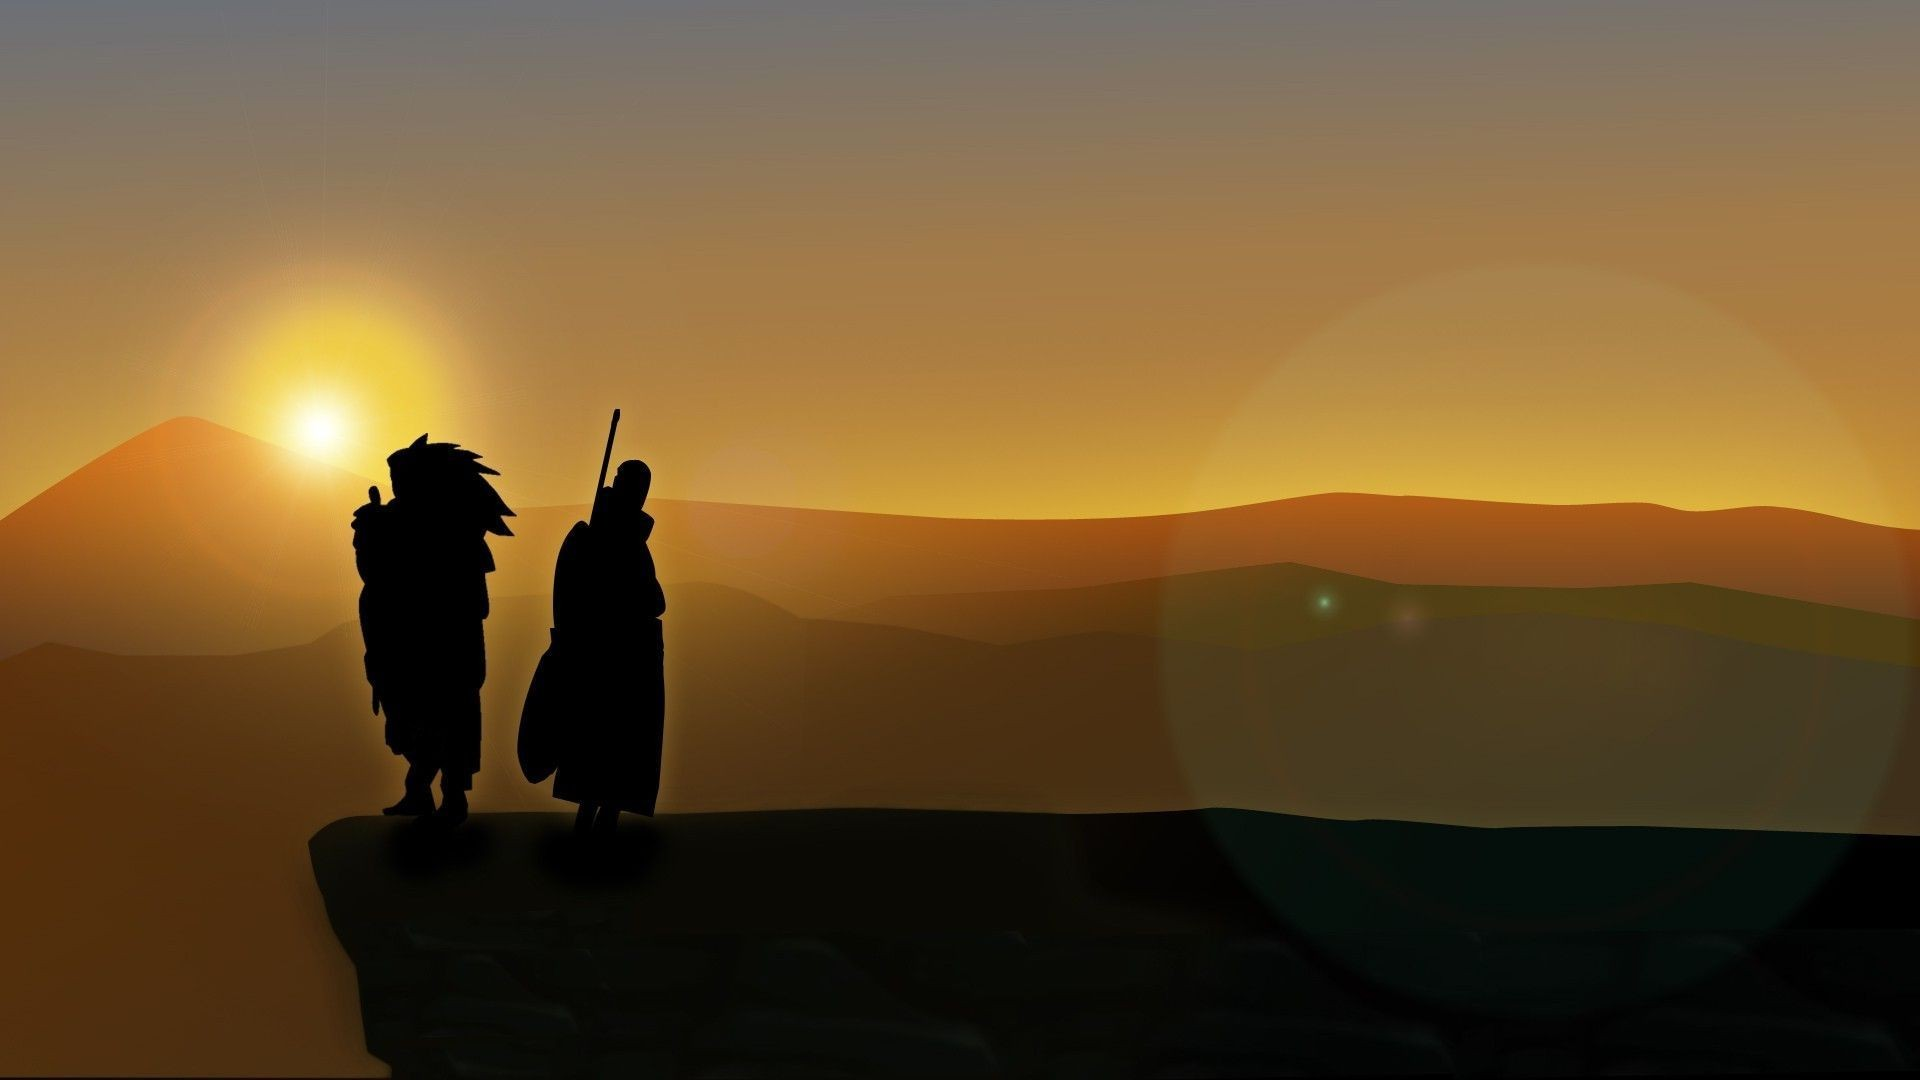 1920x1080 Naruto Shippuuden, Uchiha Madara, Uchiha Obito, Silhouette, Lens Flare,  Cliff, Tobi Wallpapers HD / Desktop and Mobile Backgrounds